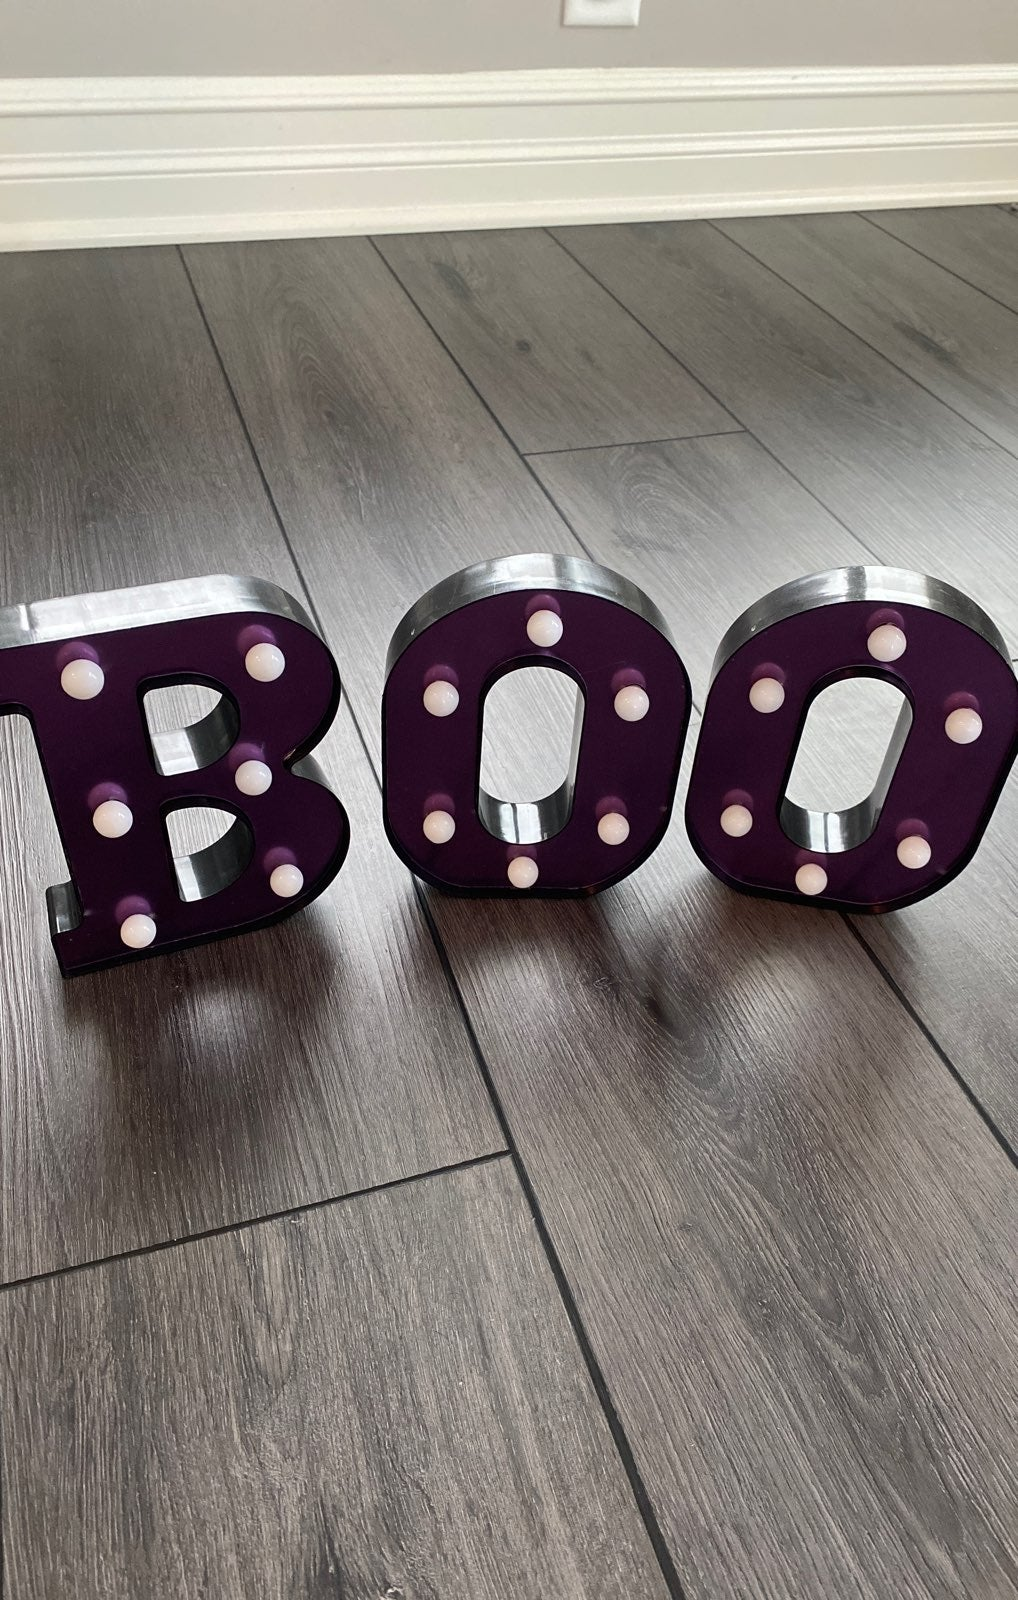 Brand new BOO Marquee Decoration